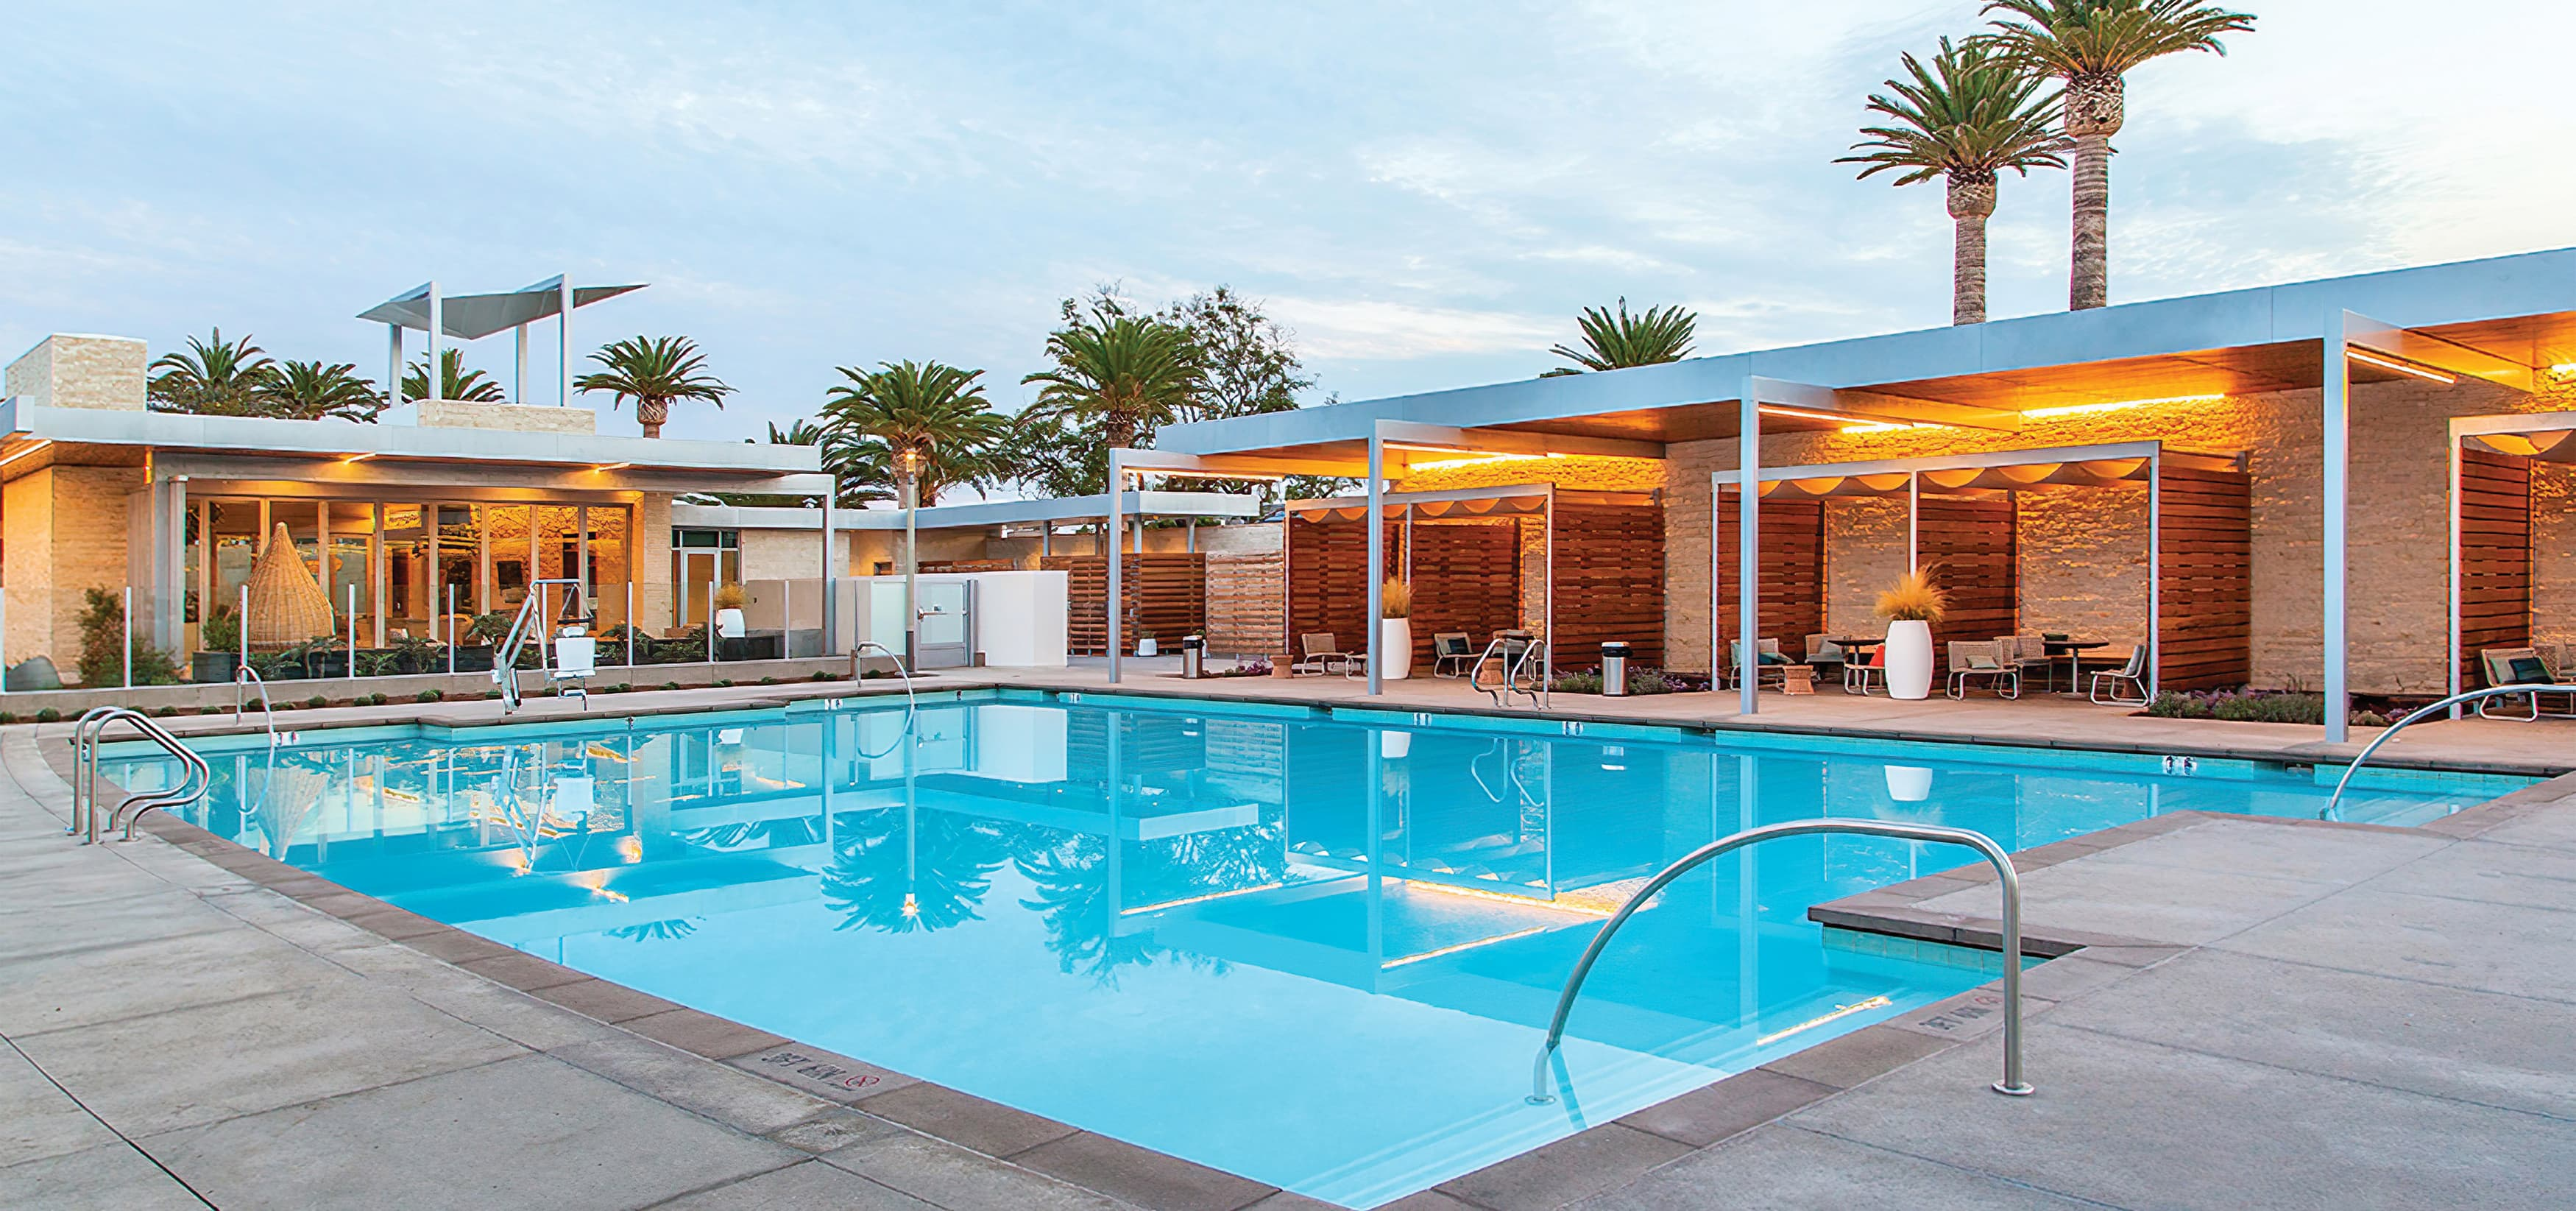 The Pools, a residential community park in Irvine, California. RSM Design prepared identity signage and regulatory signage.